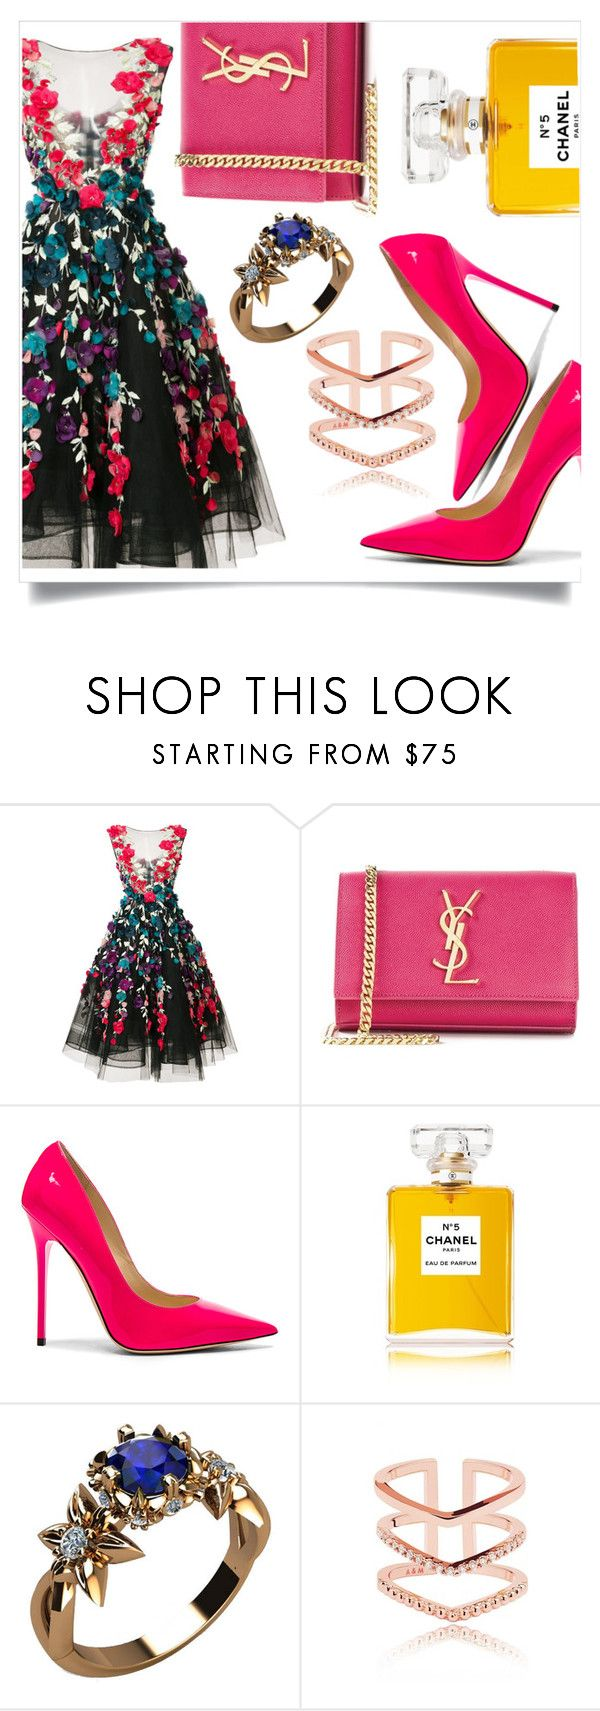 """""""👗"""" by culinaryjumi ❤ liked on Polyvore featuring Marchesa, Yves Saint Laurent, Jimmy Choo and Chanel"""